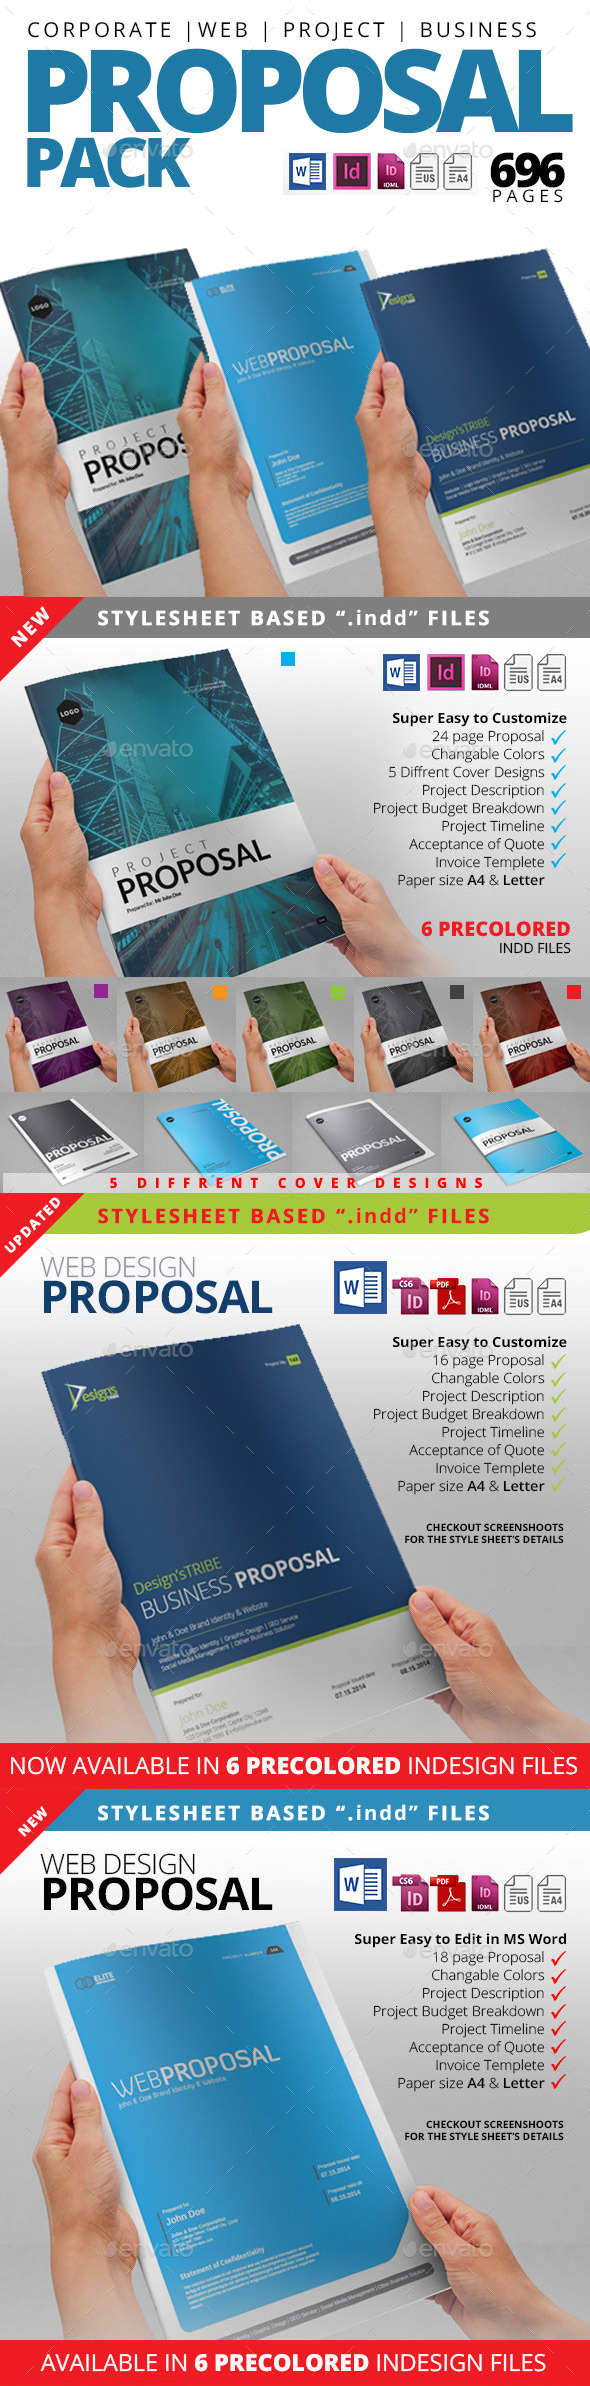 Proposal Pack 1 - Proposals & Invoices Stationery